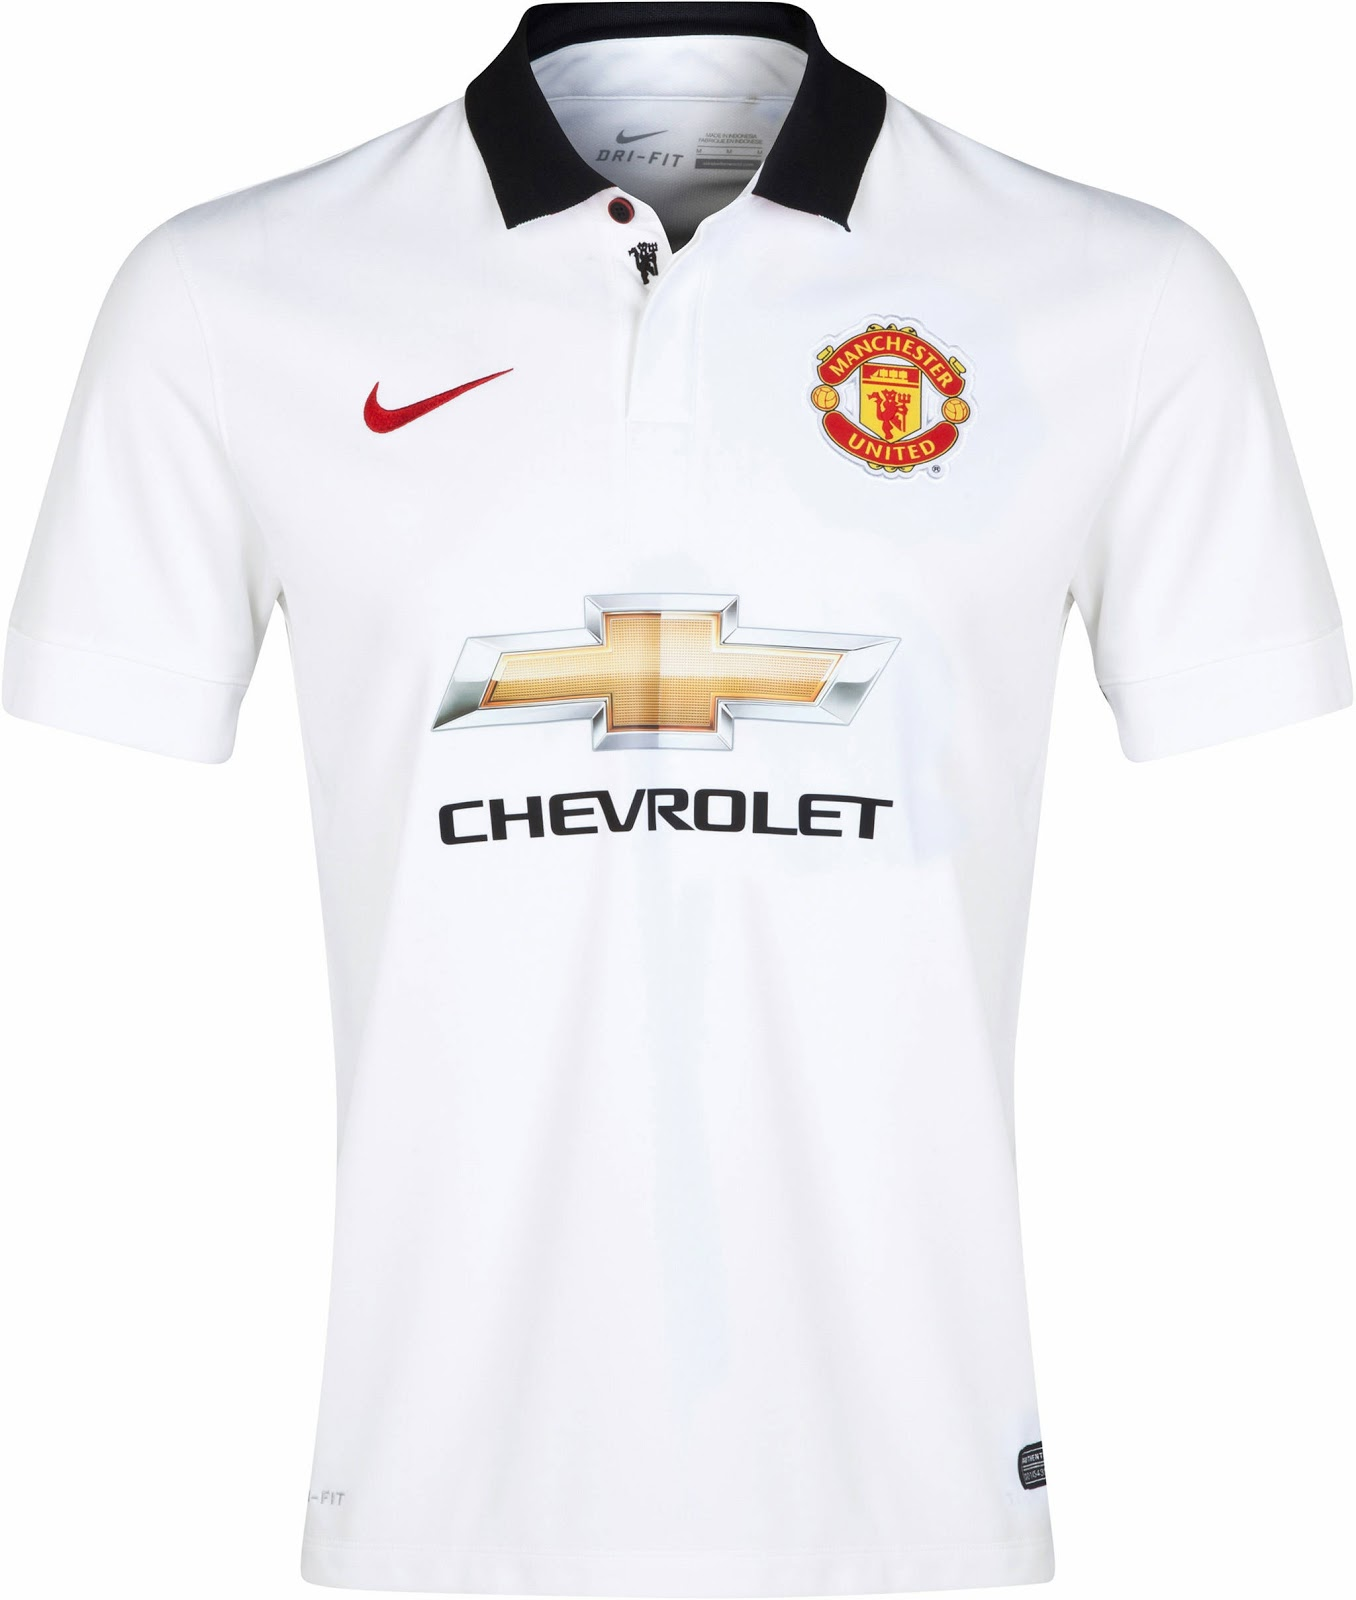 Manchester-United-14-15-Away-Kit+%281%29